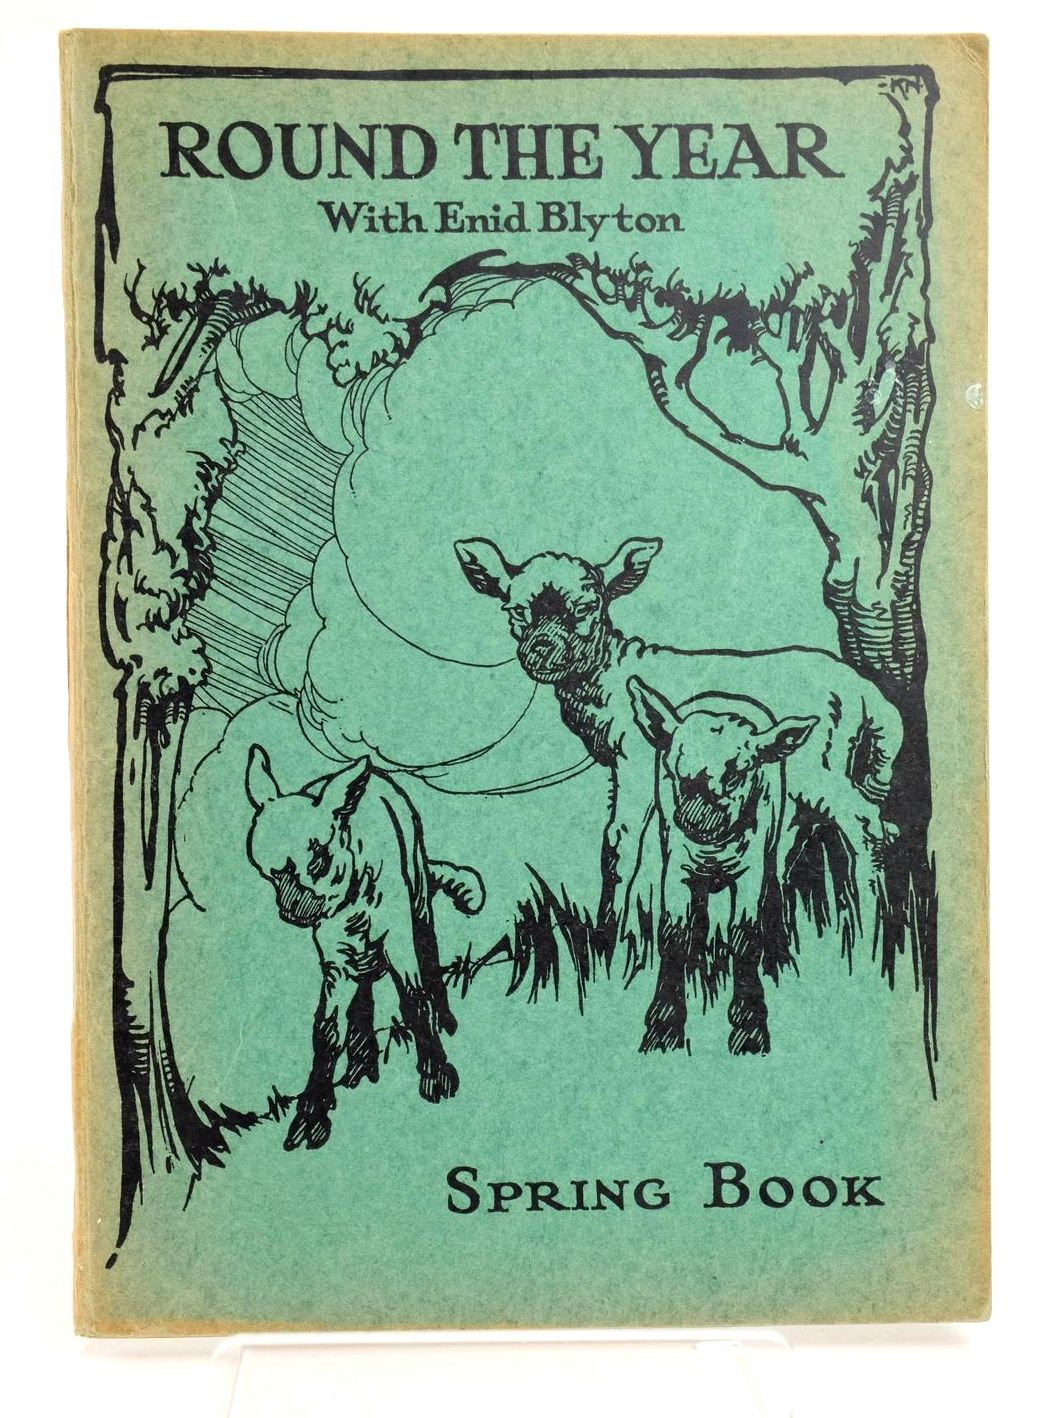 Photo of ROUND THE YEAR WITH ENID BLYTON - SPRING BOOK written by Blyton, Enid published by Evans Brothers Limited (STOCK CODE: 1318799)  for sale by Stella & Rose's Books